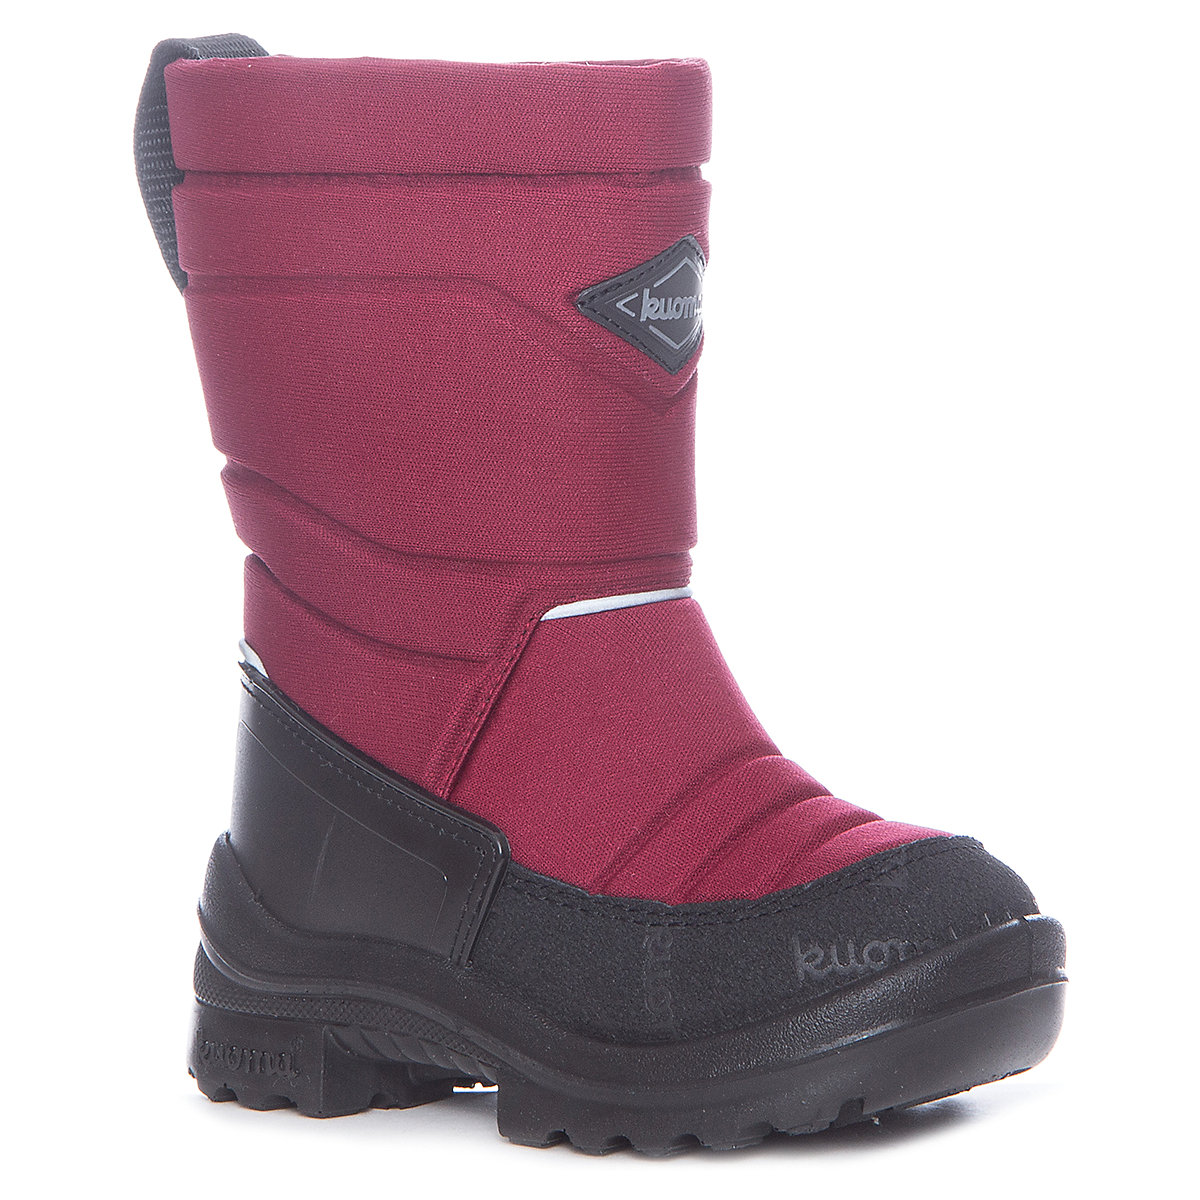 Boots KUOMA for girls 7047194 Valenki Uggi Winter shoes Children Kids